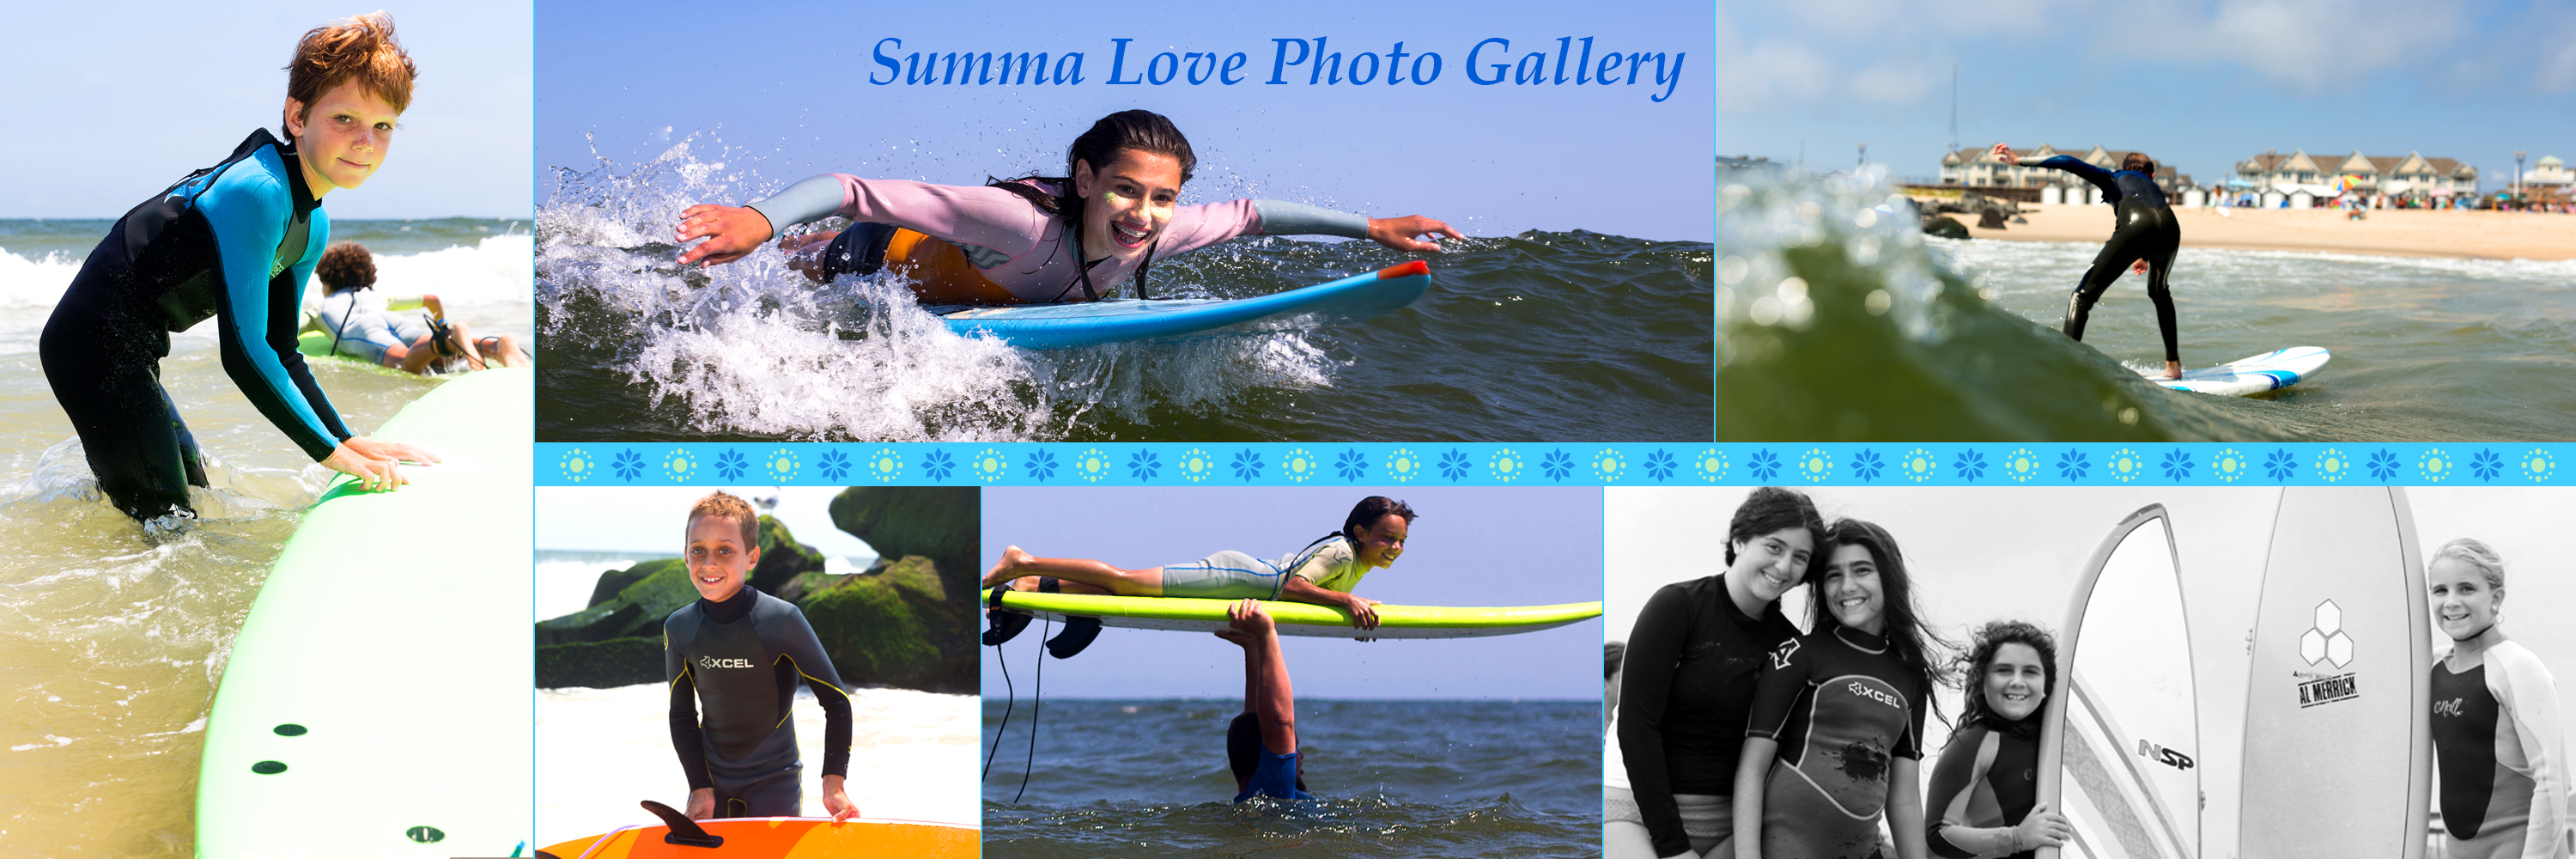 Surfing Gallery